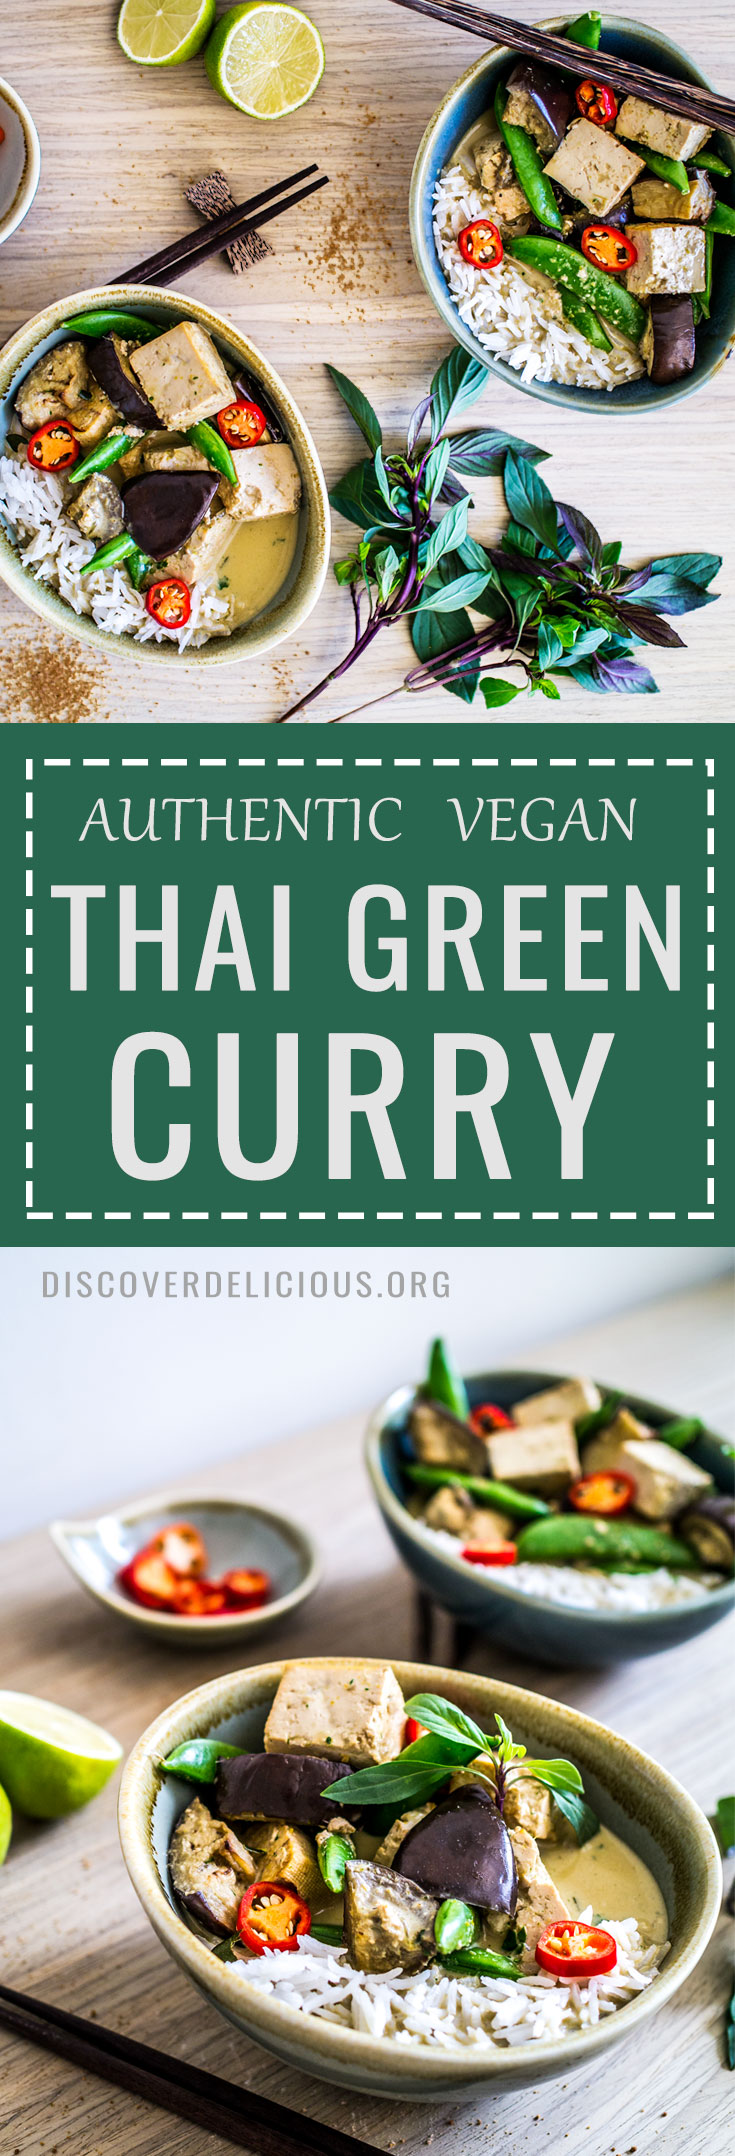 Authentic Vegan Thai Green Curry! With aubergine, sugar snap peas and fluffy basmati rice | www.discoverdelicious.org